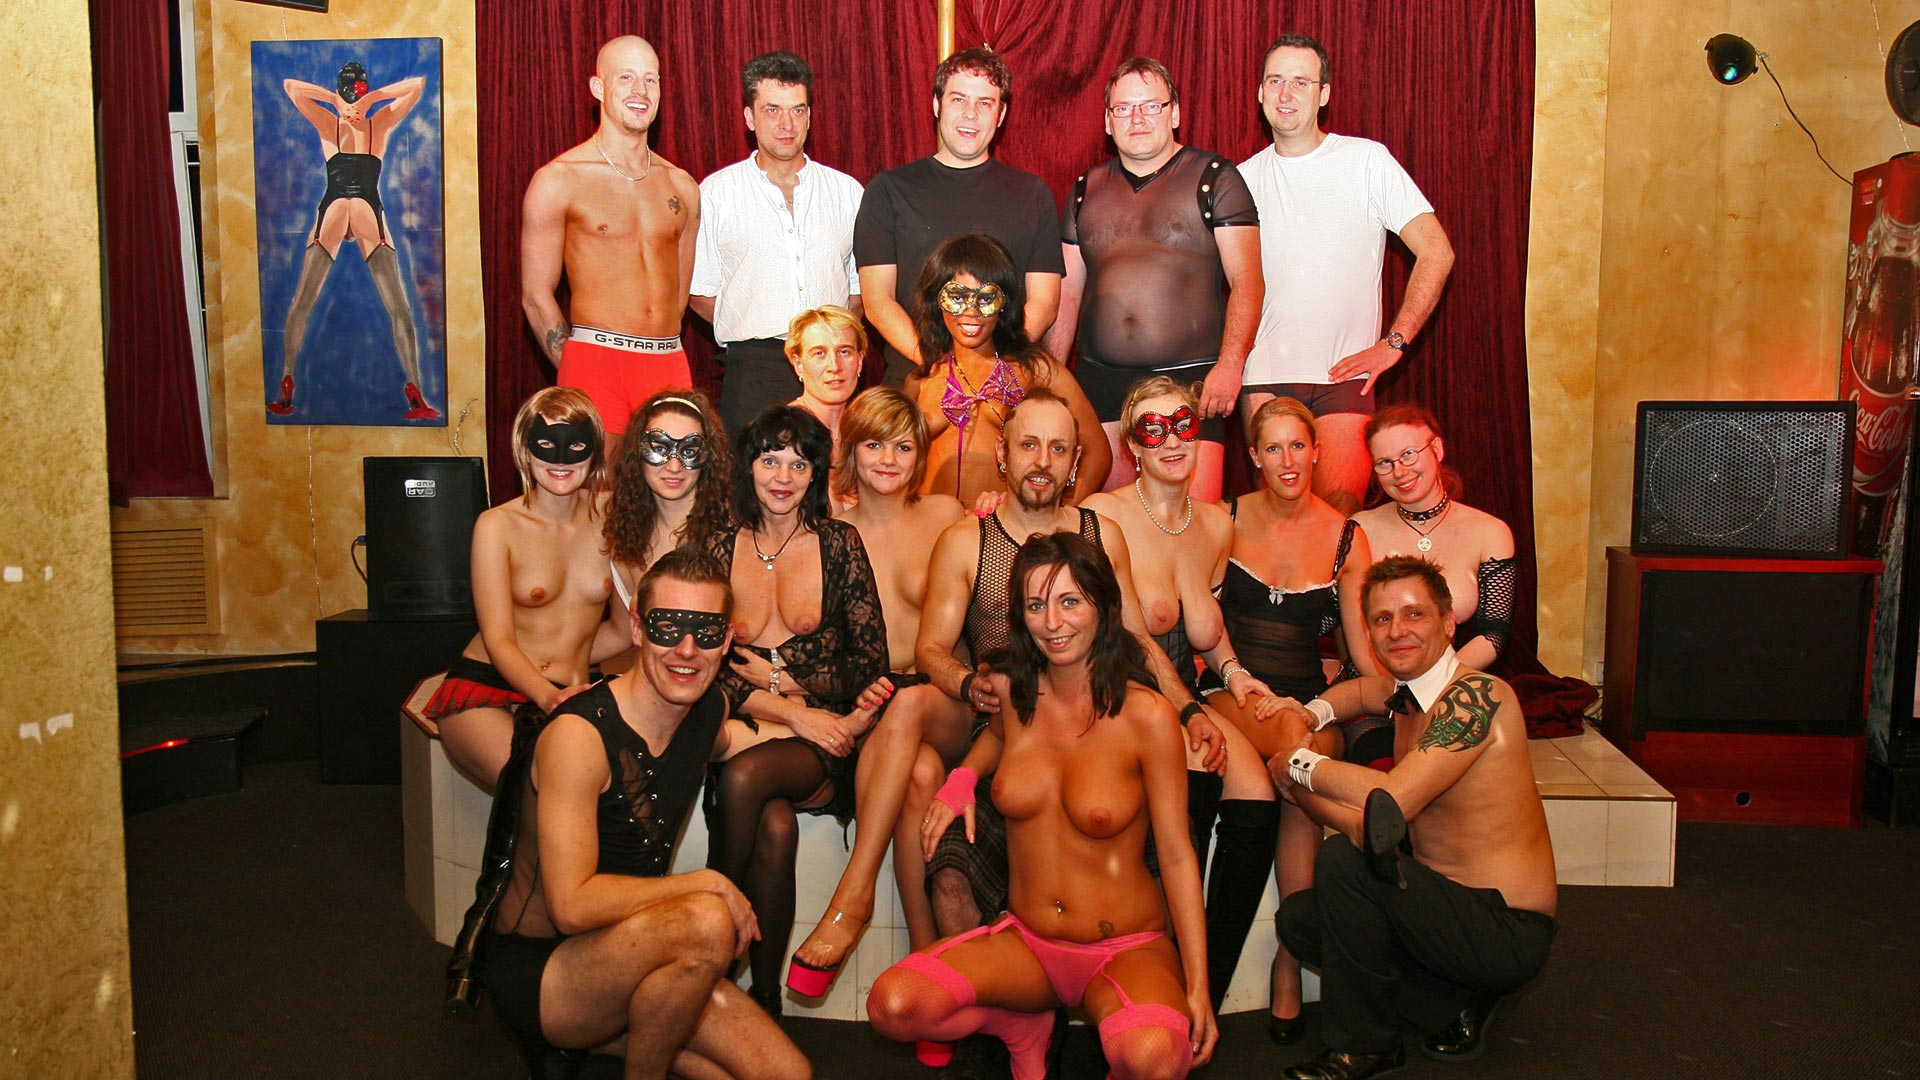 London swingers party, stronger erotic movies